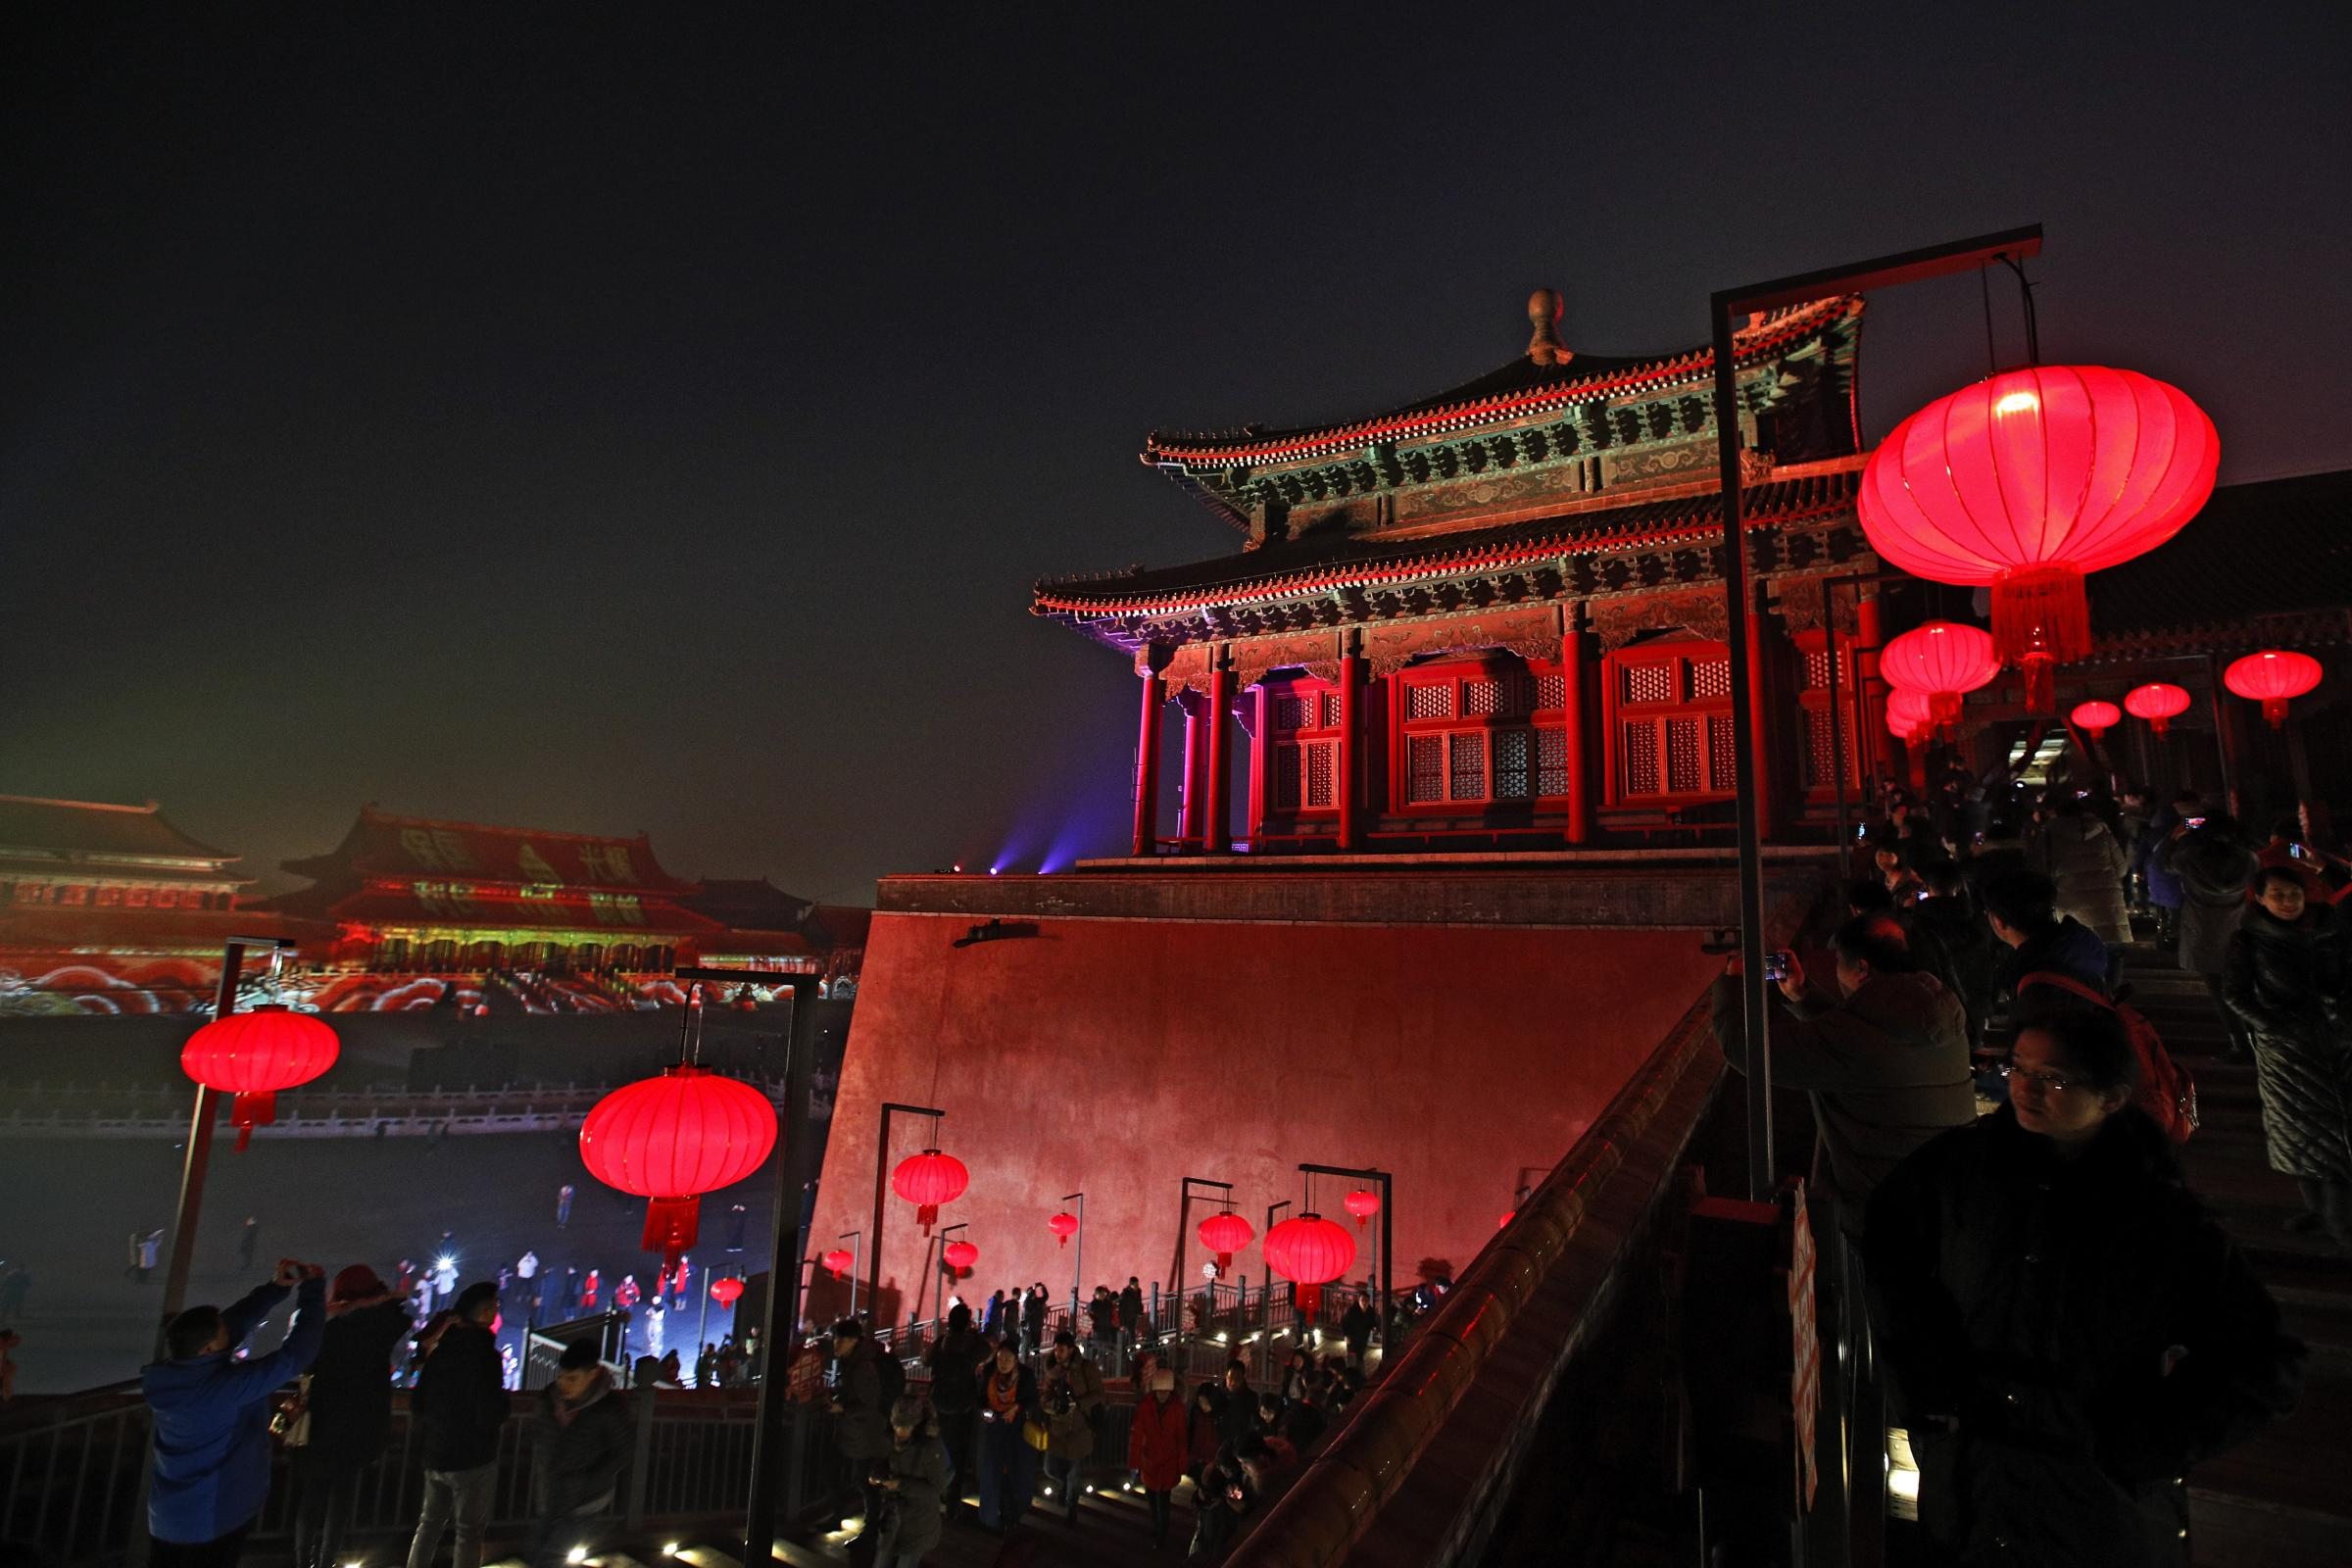 Visitors tour the Forbidden City decorated with red lanterns and illuminated with lights during the Lantern Festival in Beijing